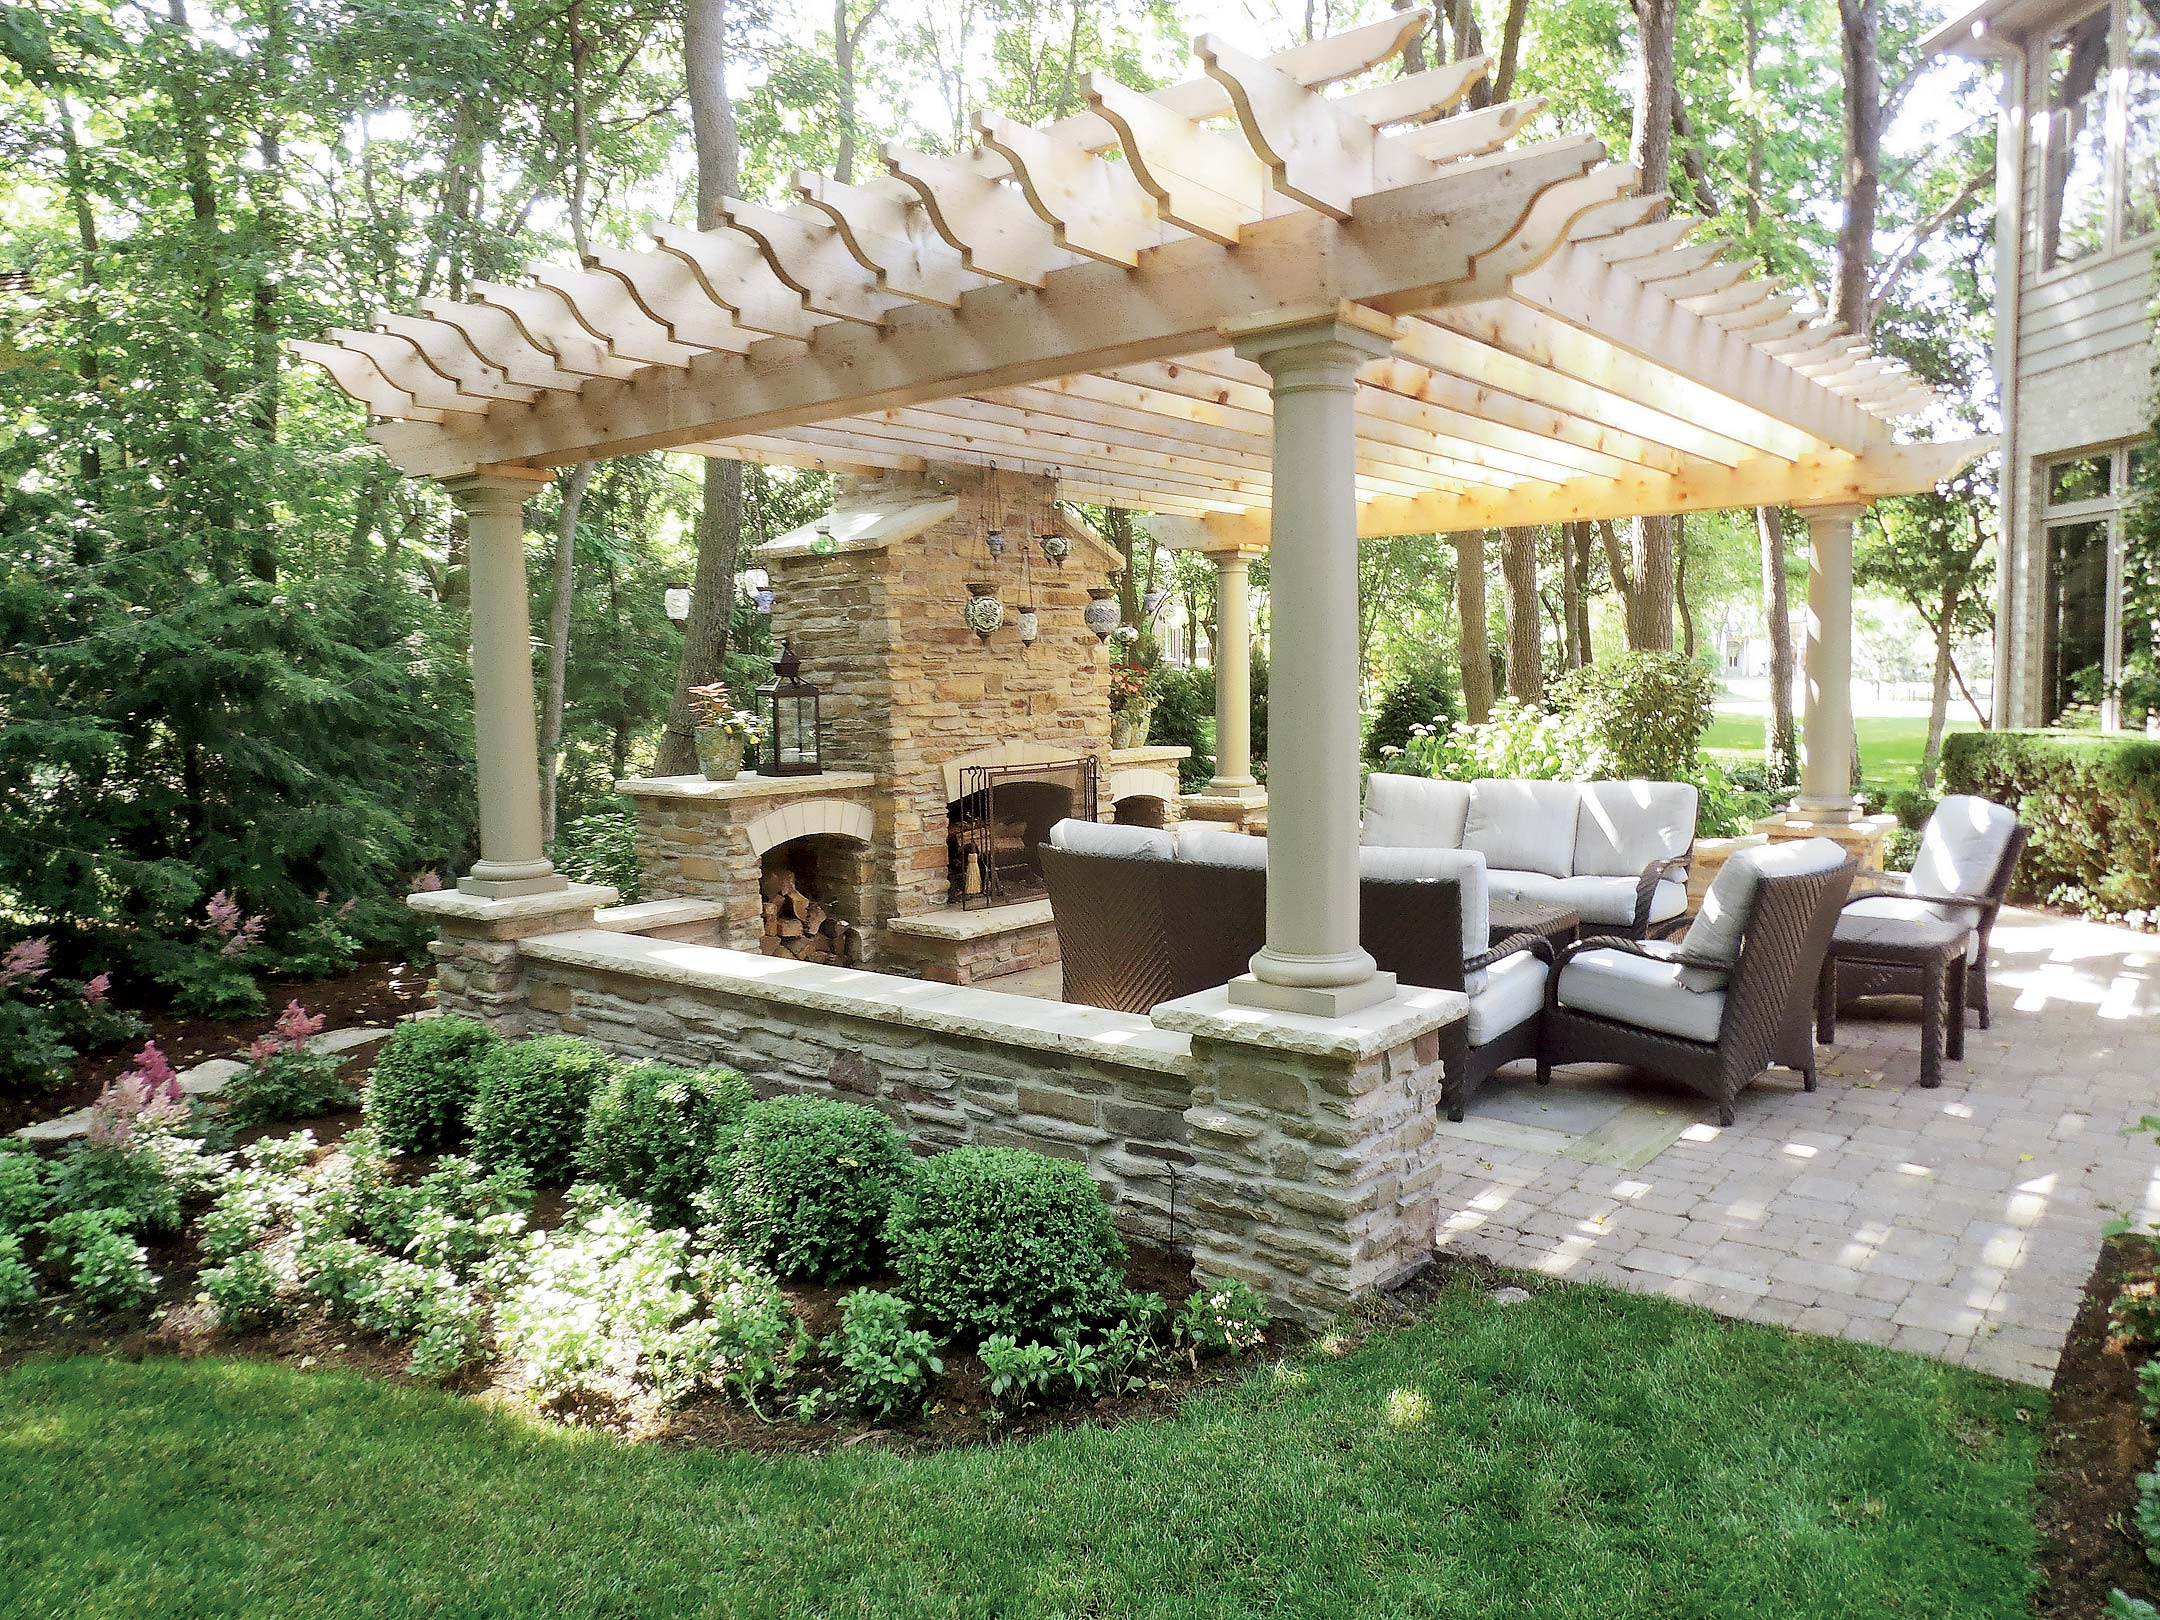 Backyard structures for entertaining for Ideas for small patio areas